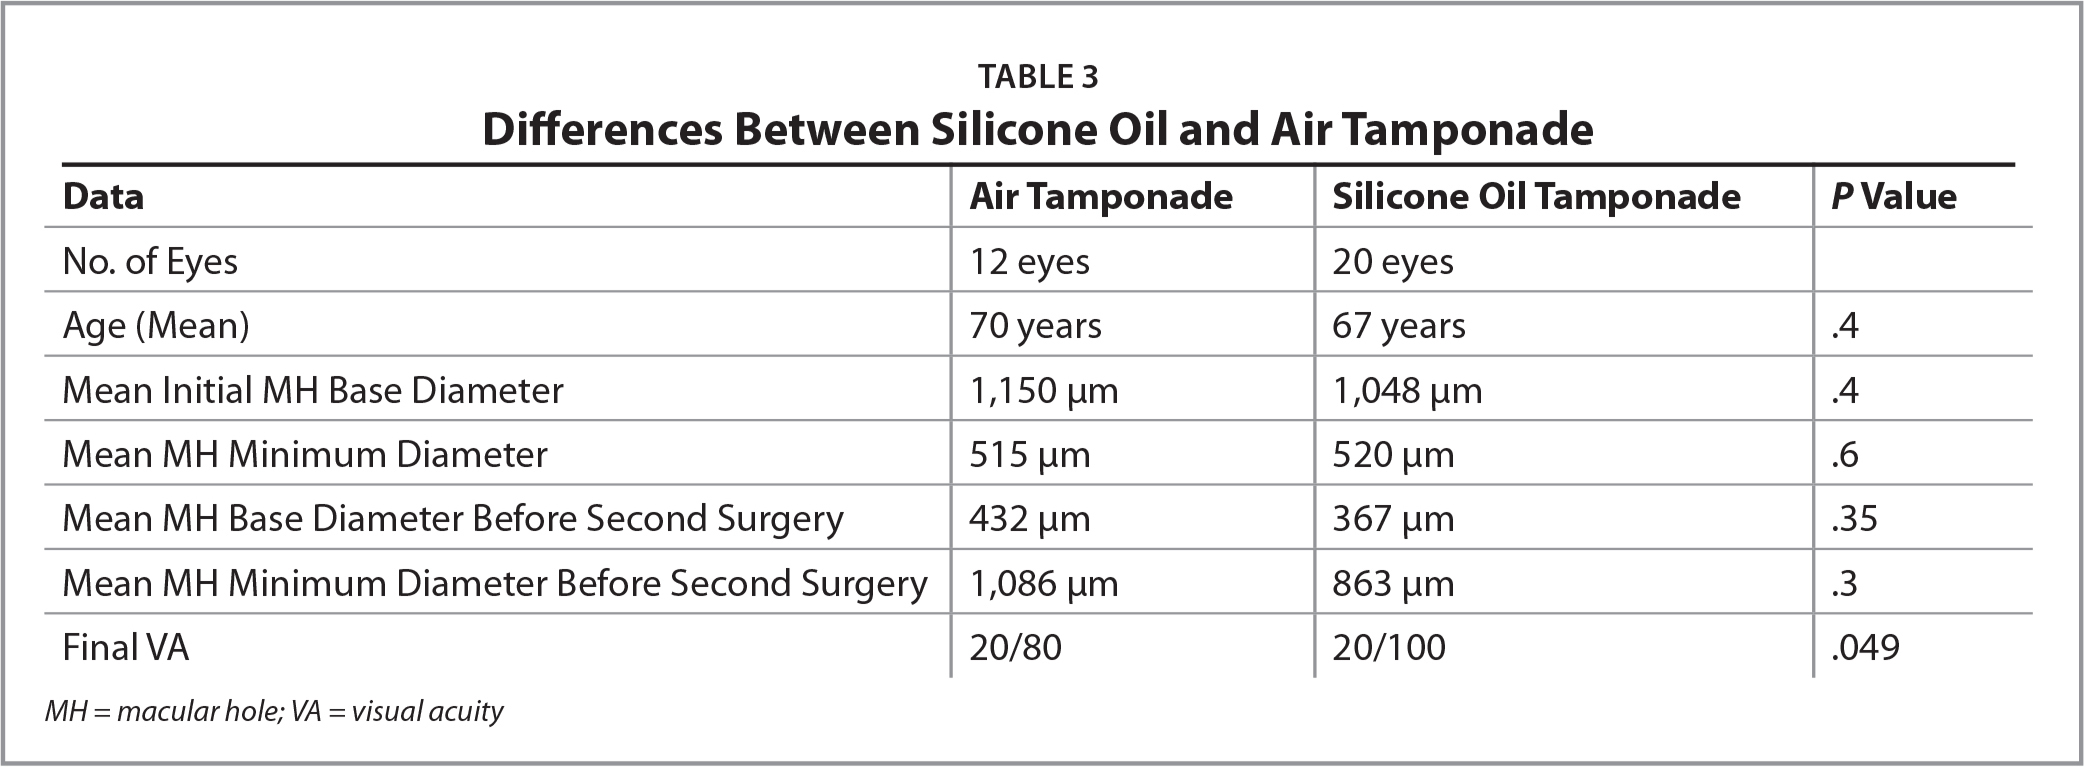 Differences Between Silicone Oil and Air Tamponade